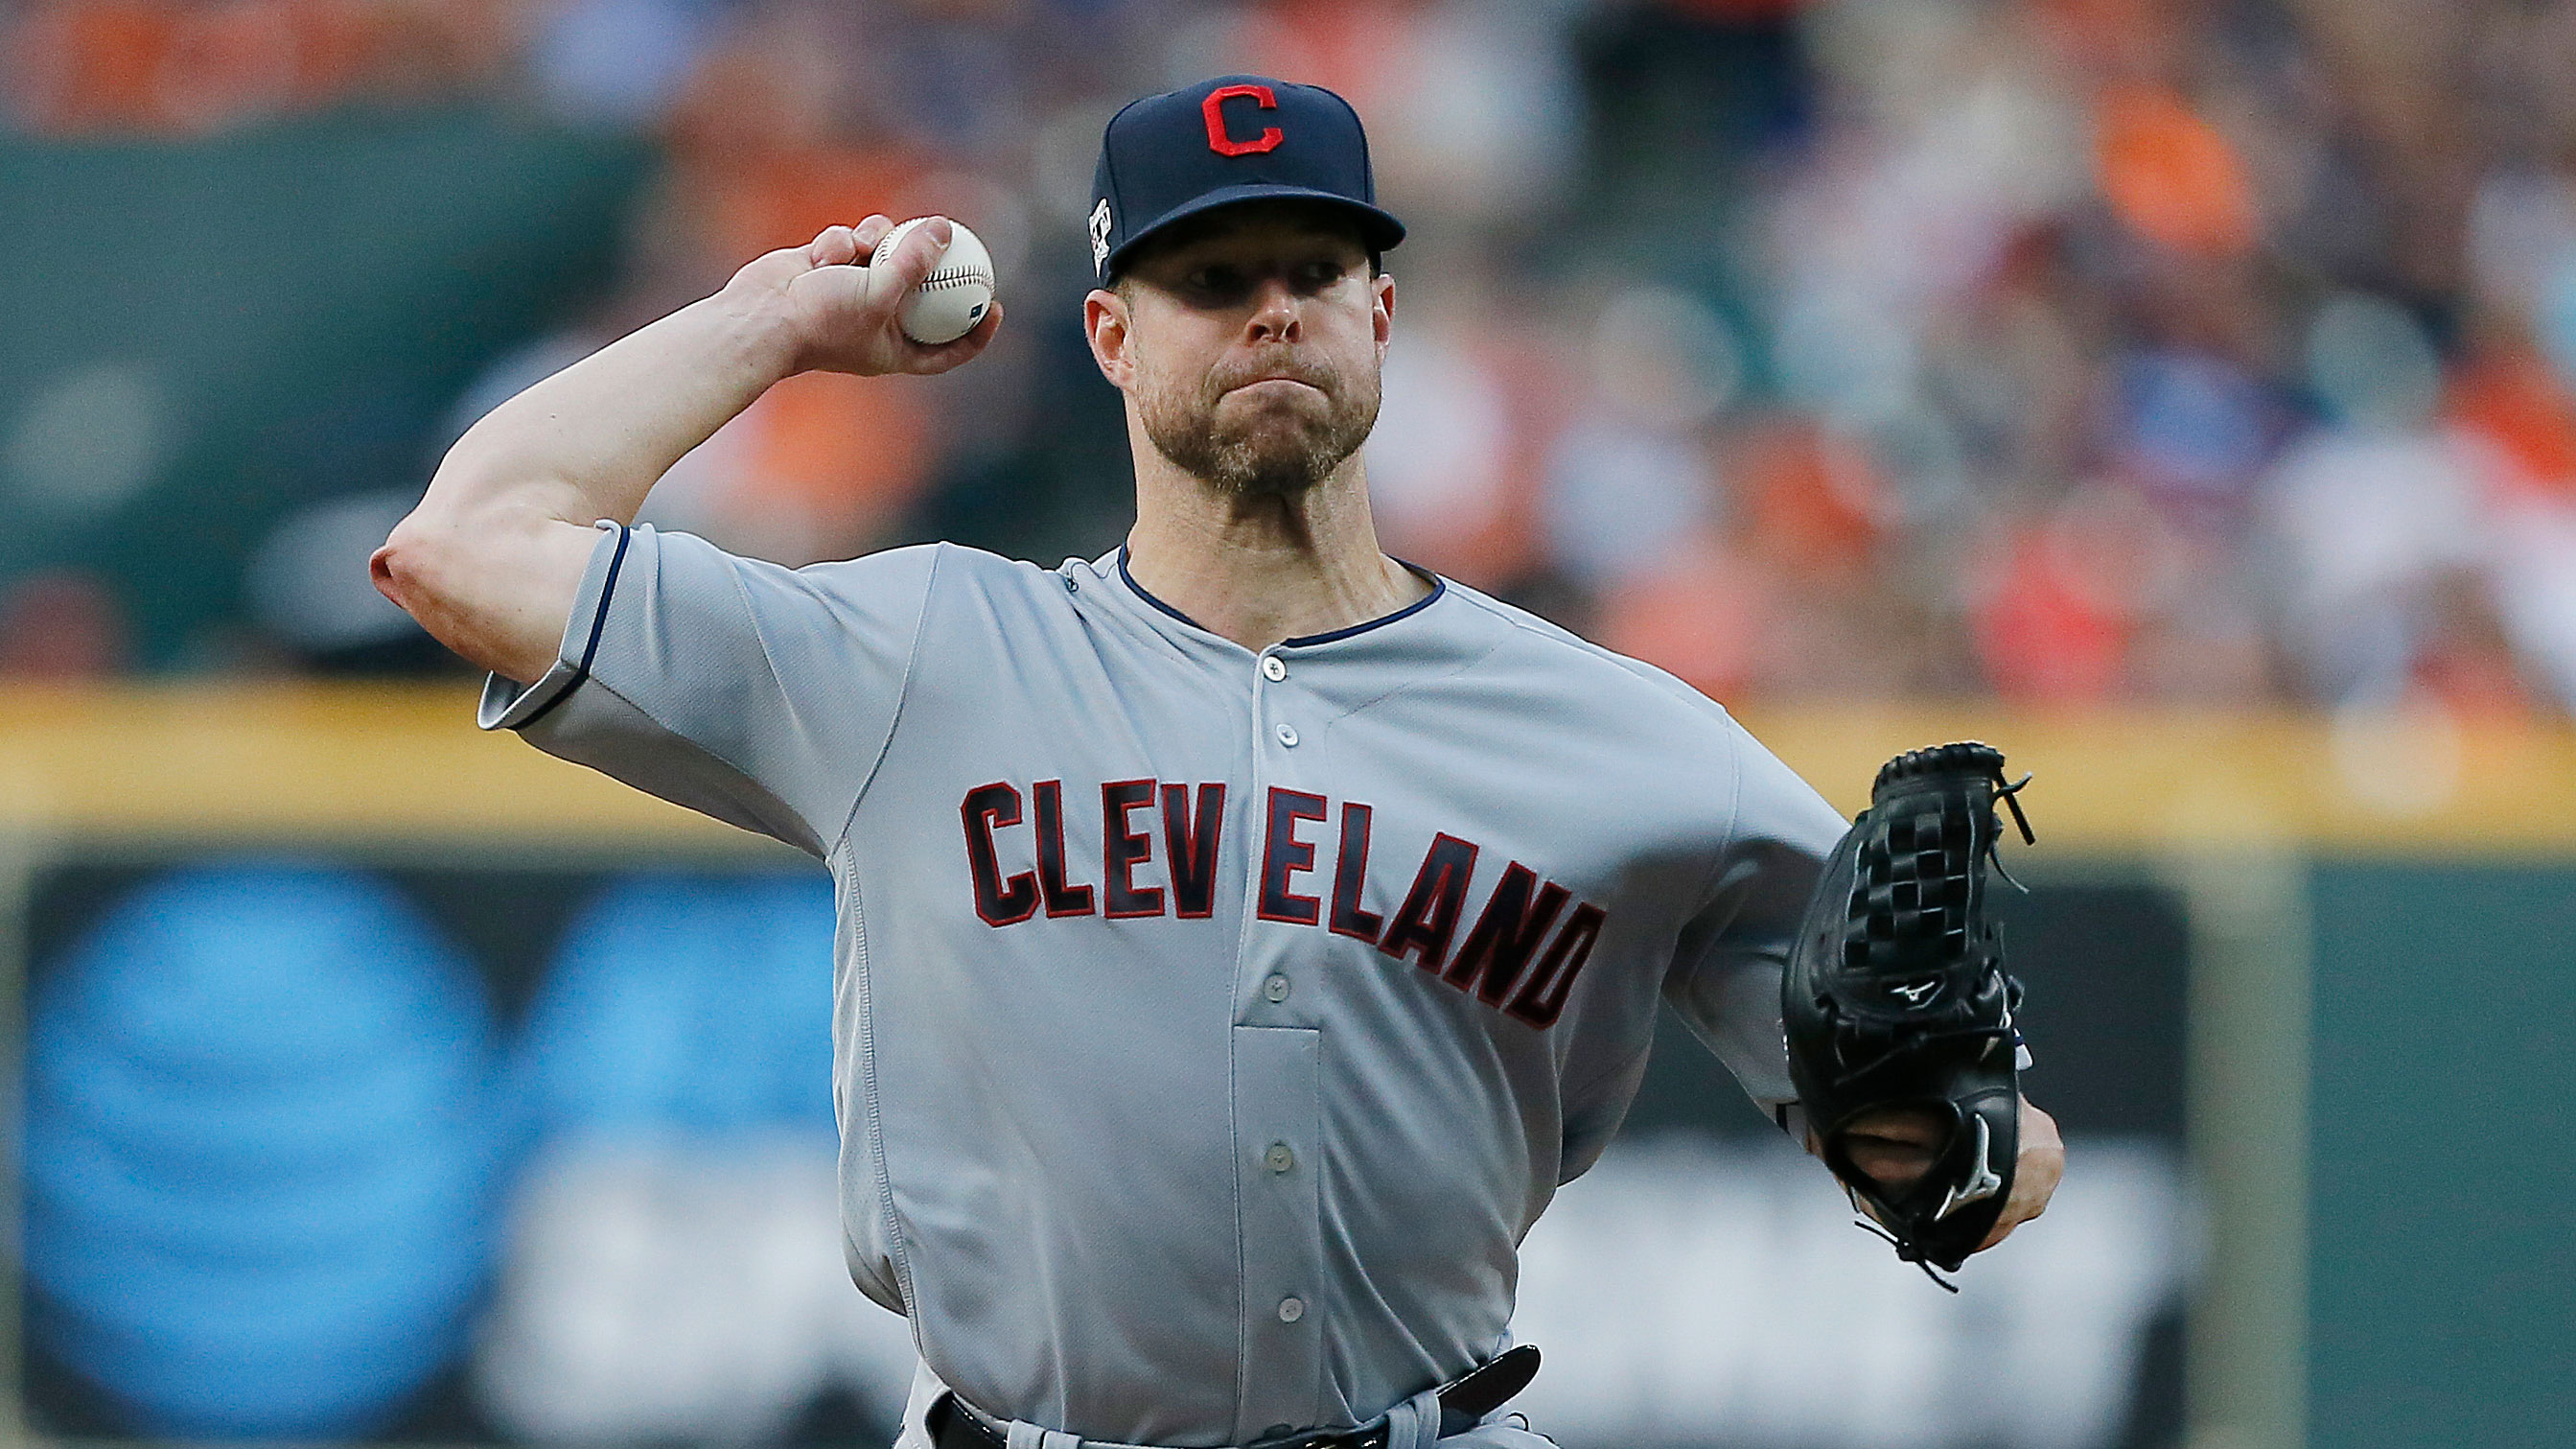 Rangers agree to acquire Kluber from Cleveland